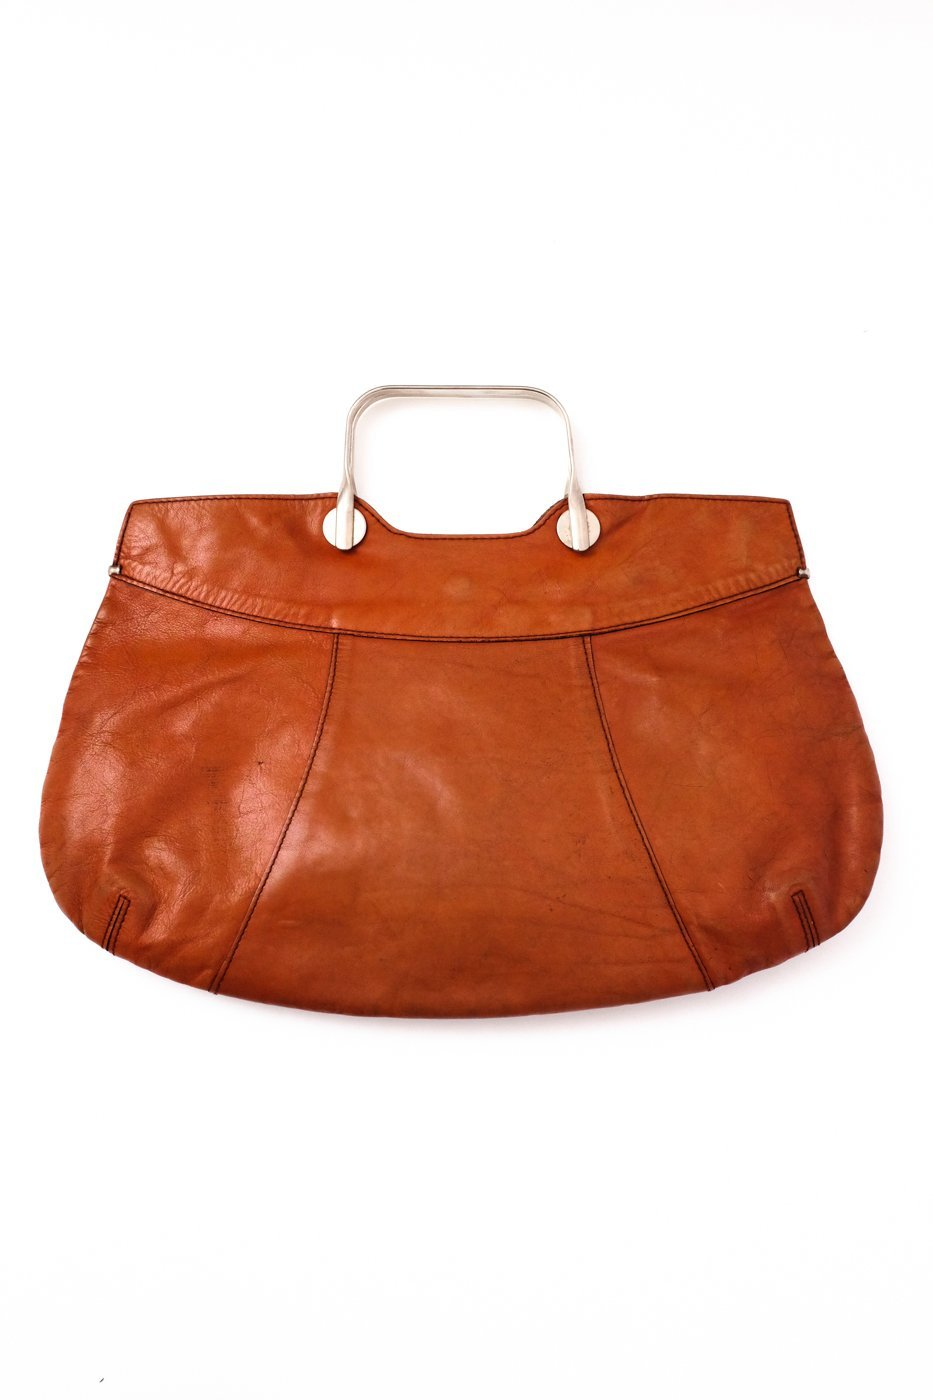 0511_ORANGE COGNAC XL LEATHER VTG BAG